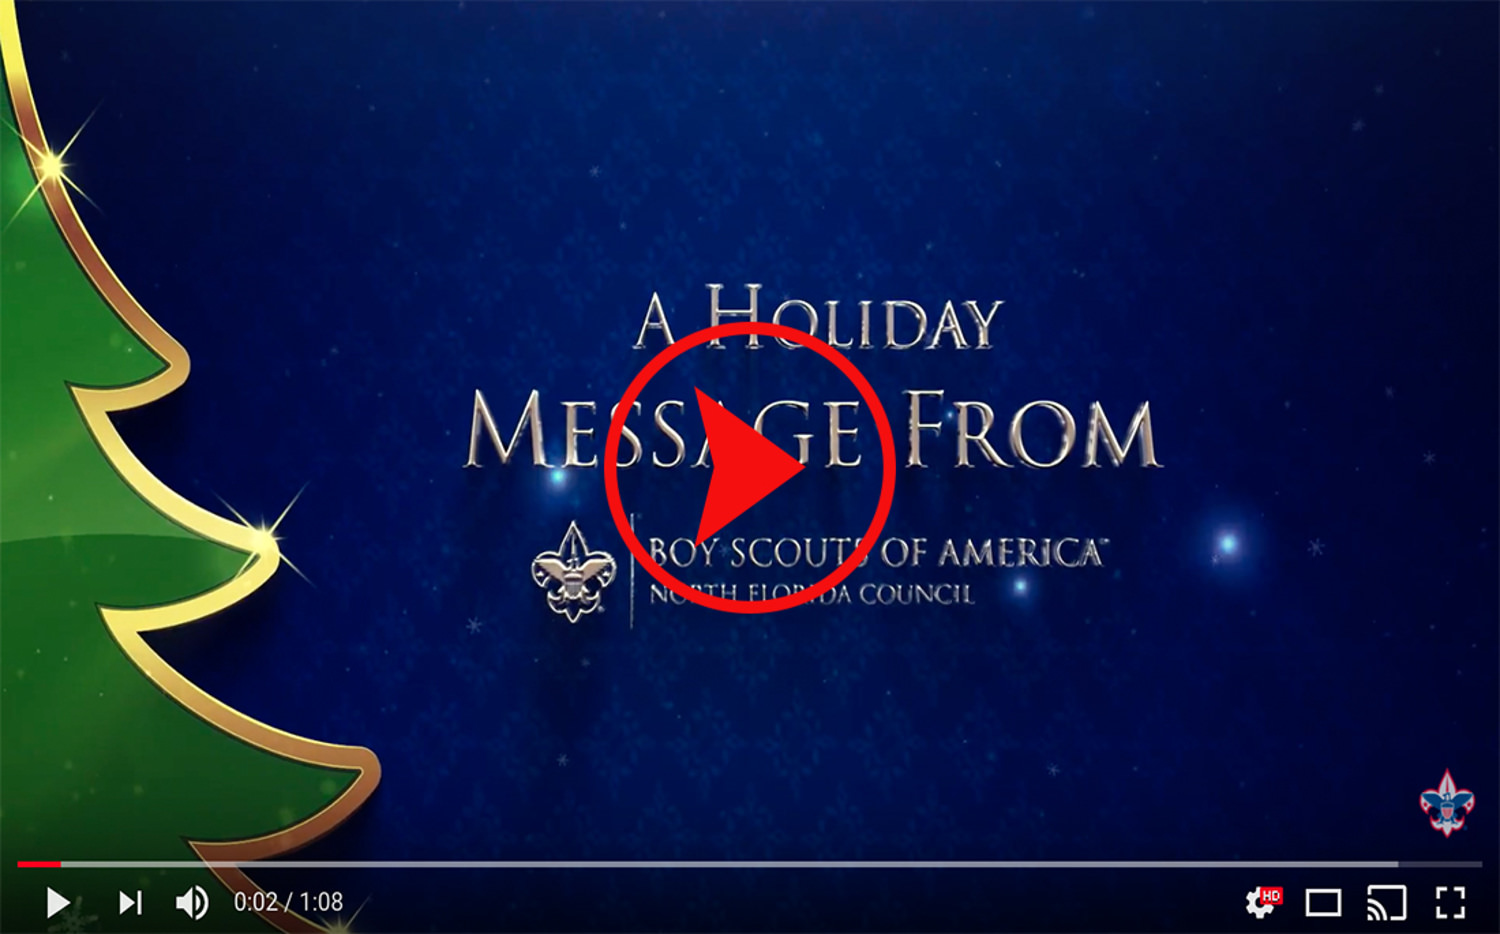 BSA NFC Holiday Message